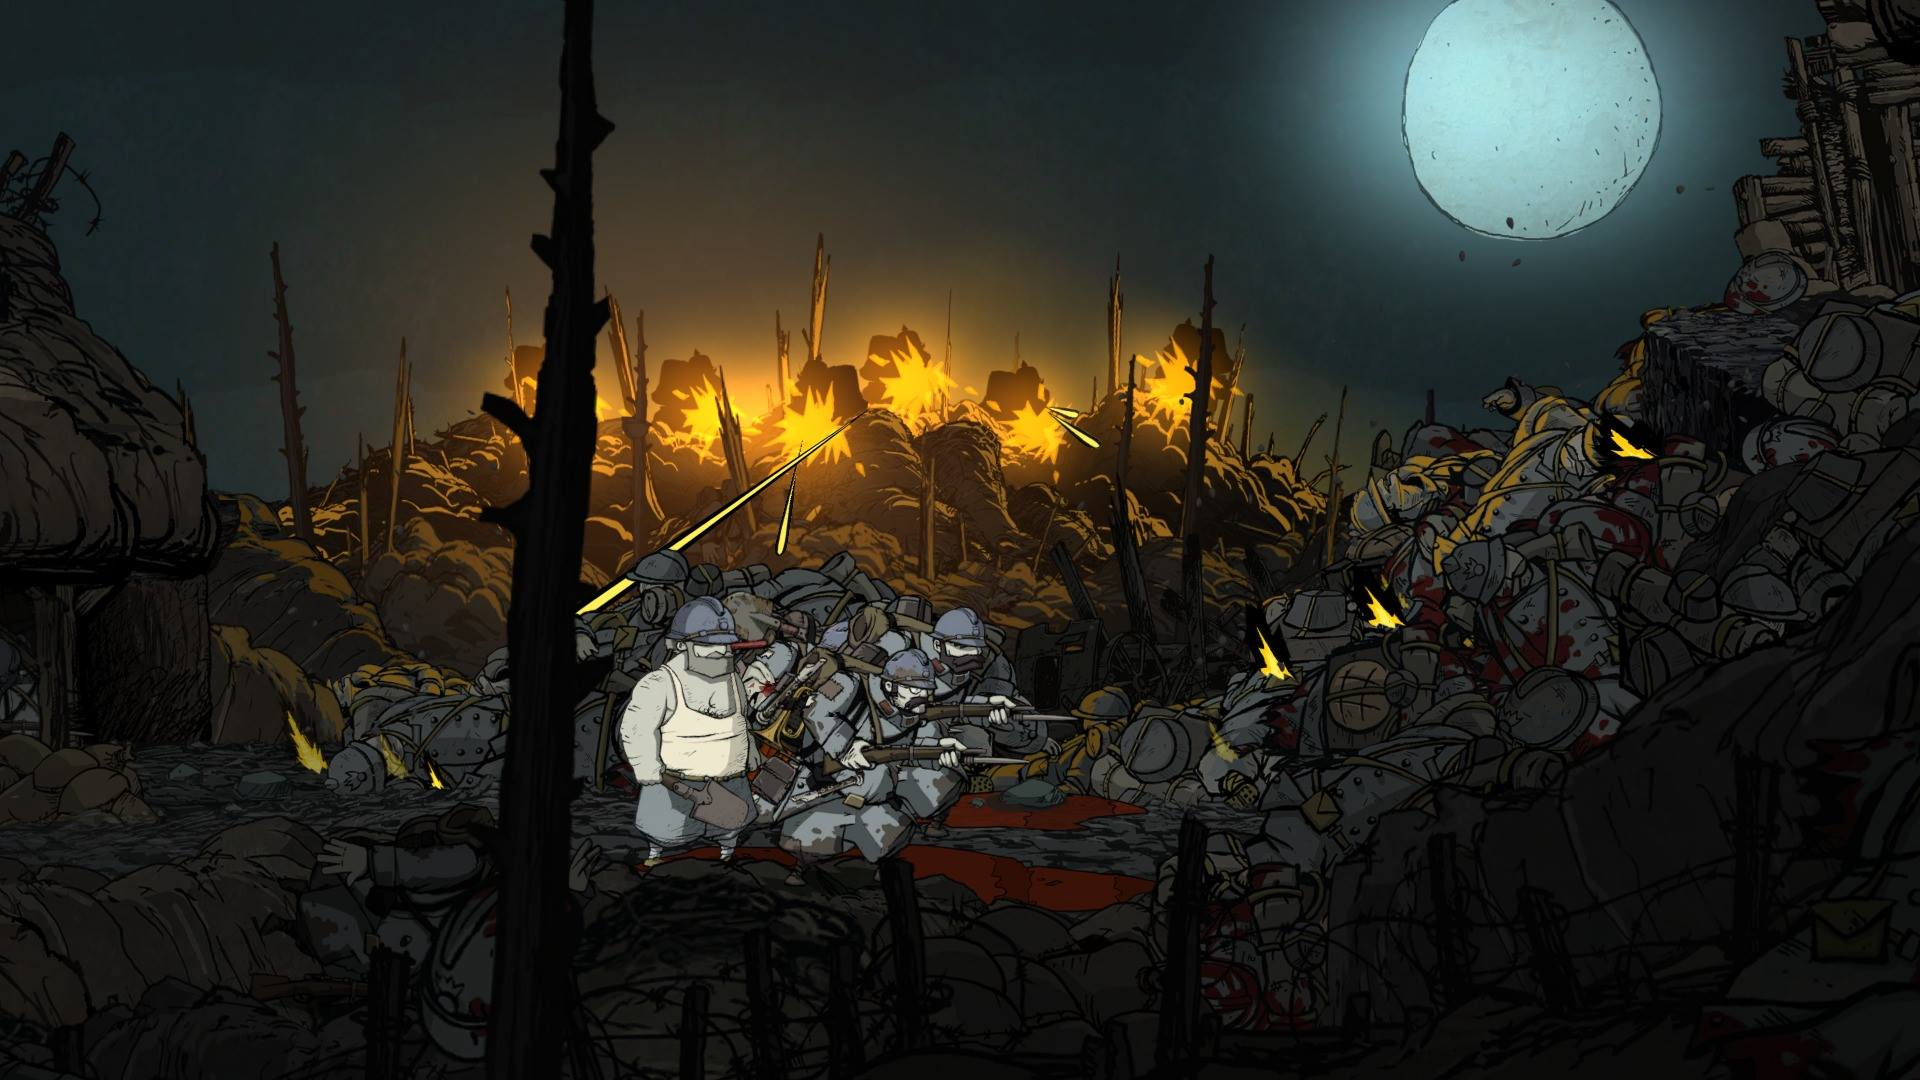 1920x1080 Wallpaper Quote Valiant Hearts The Problem And Solution Of Historical